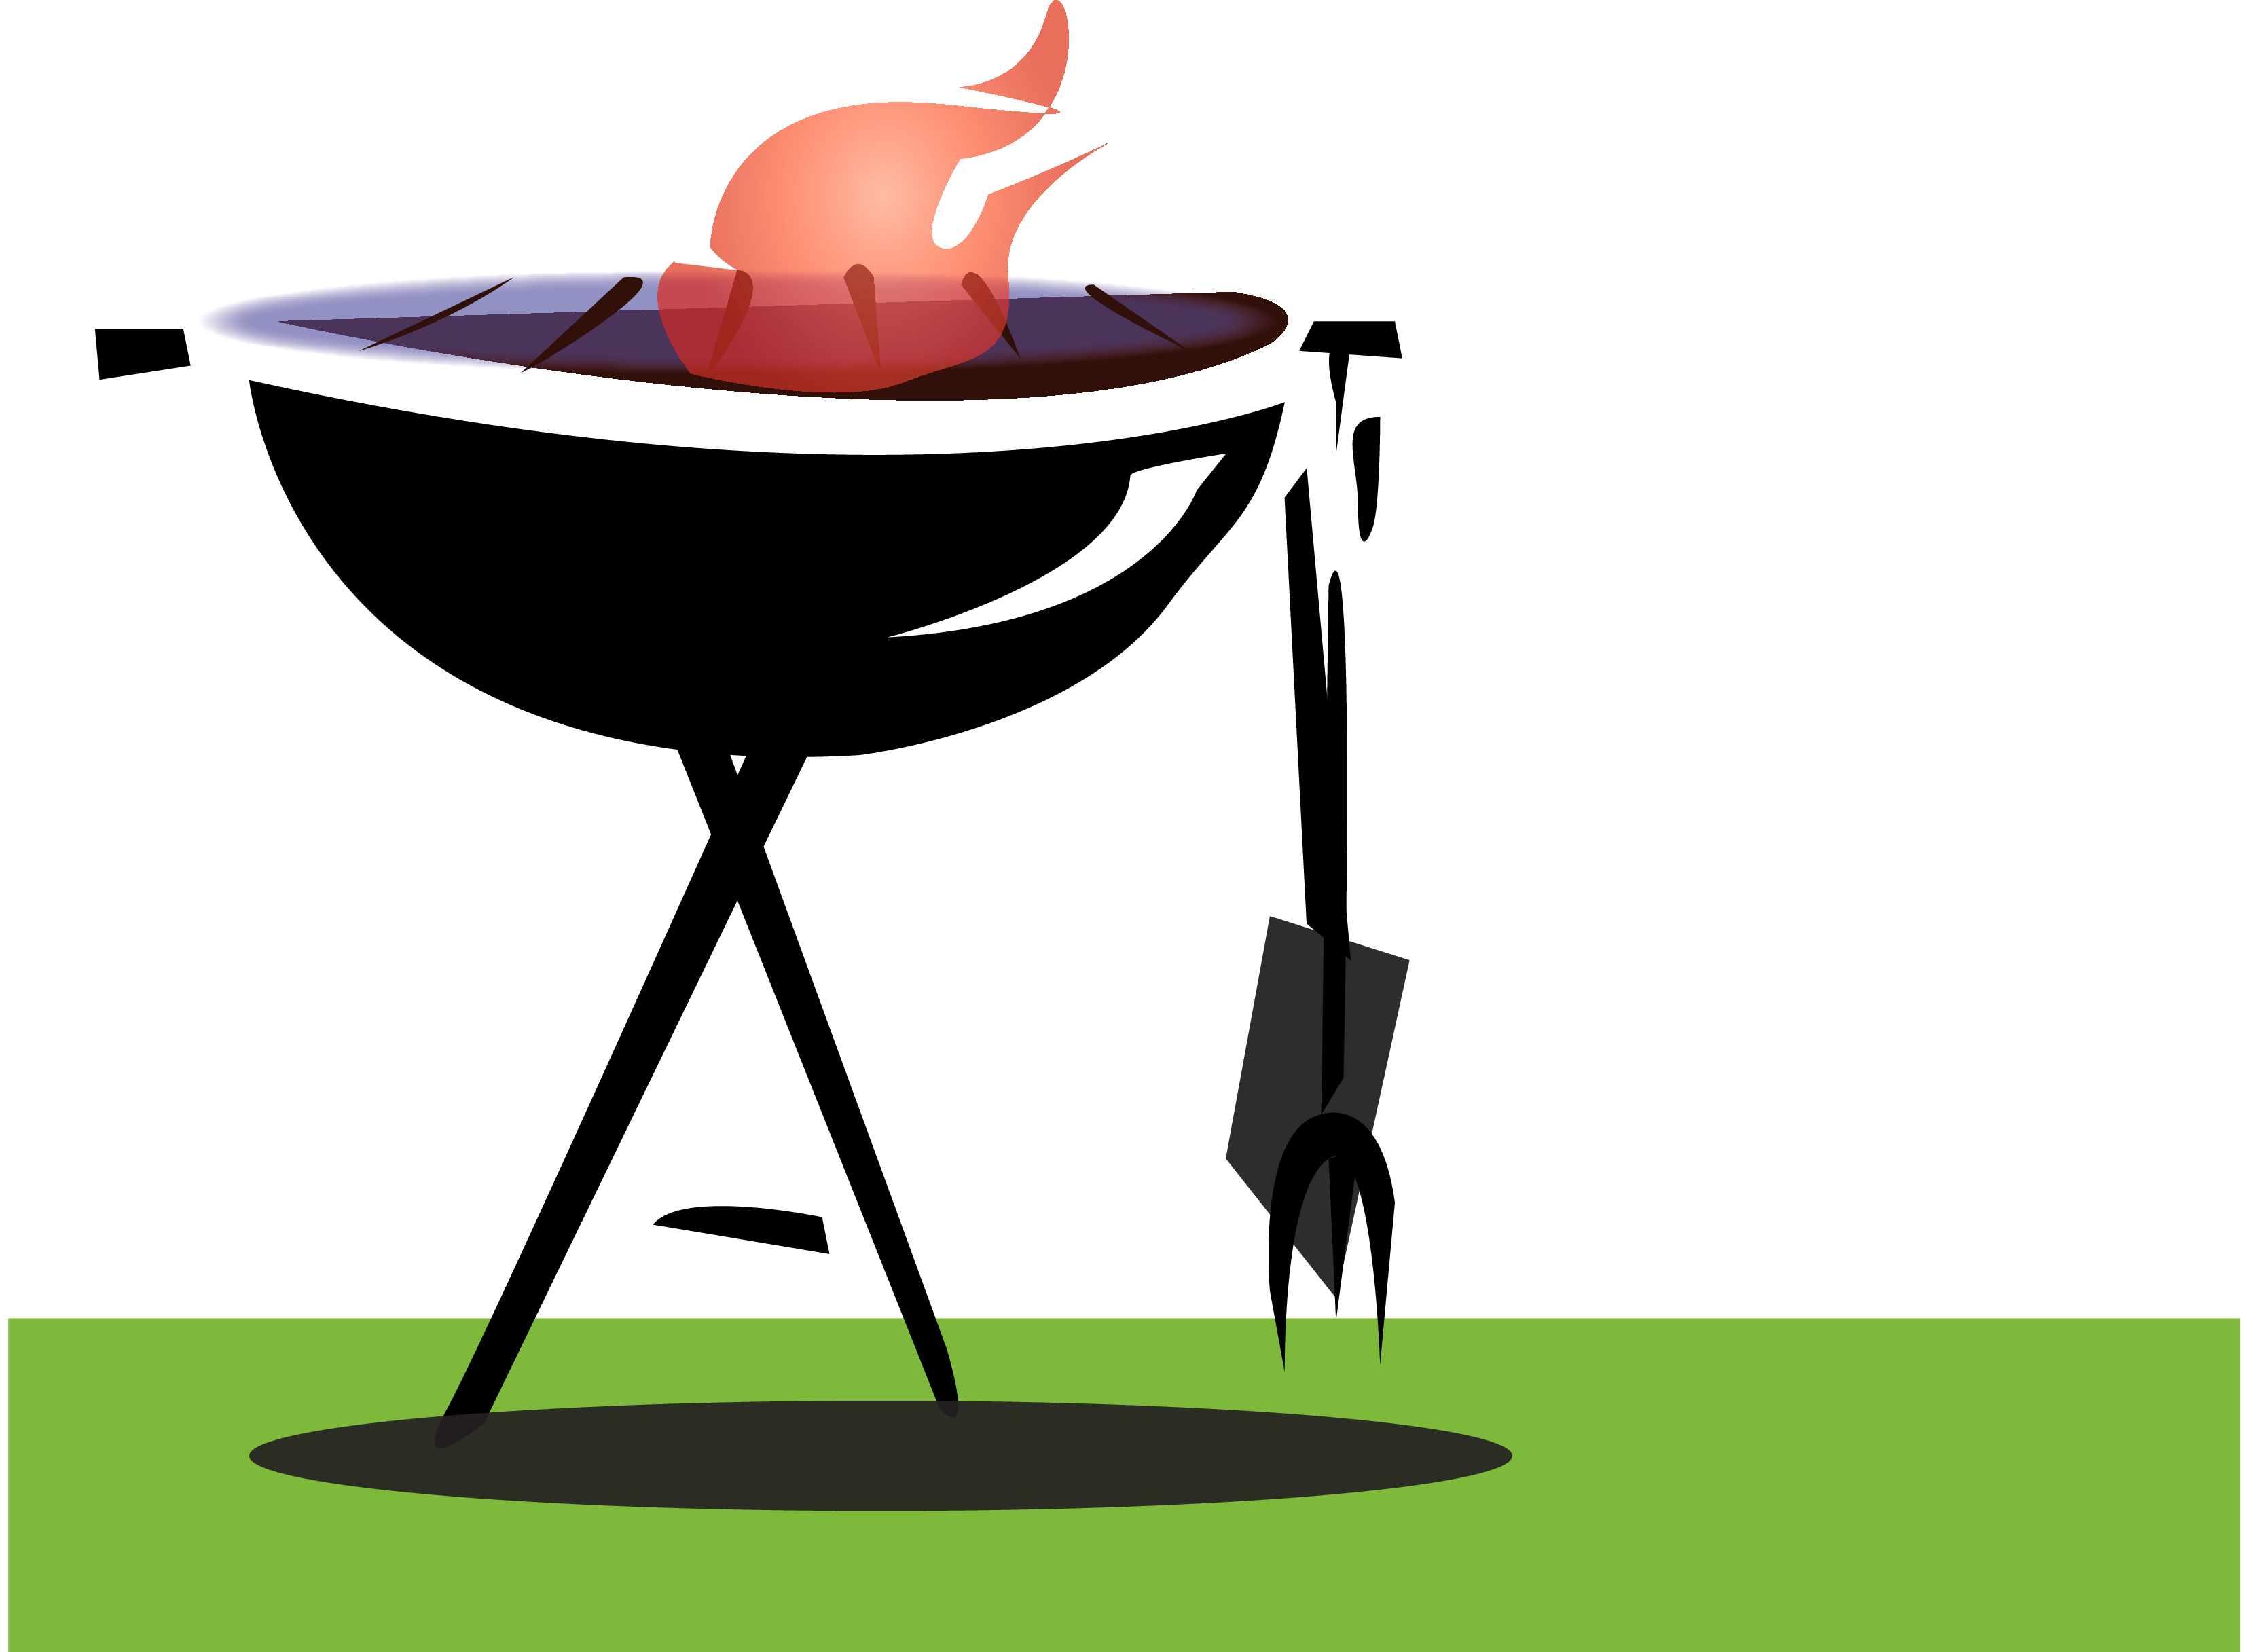 Group gclipartcom. Words clipart bbq